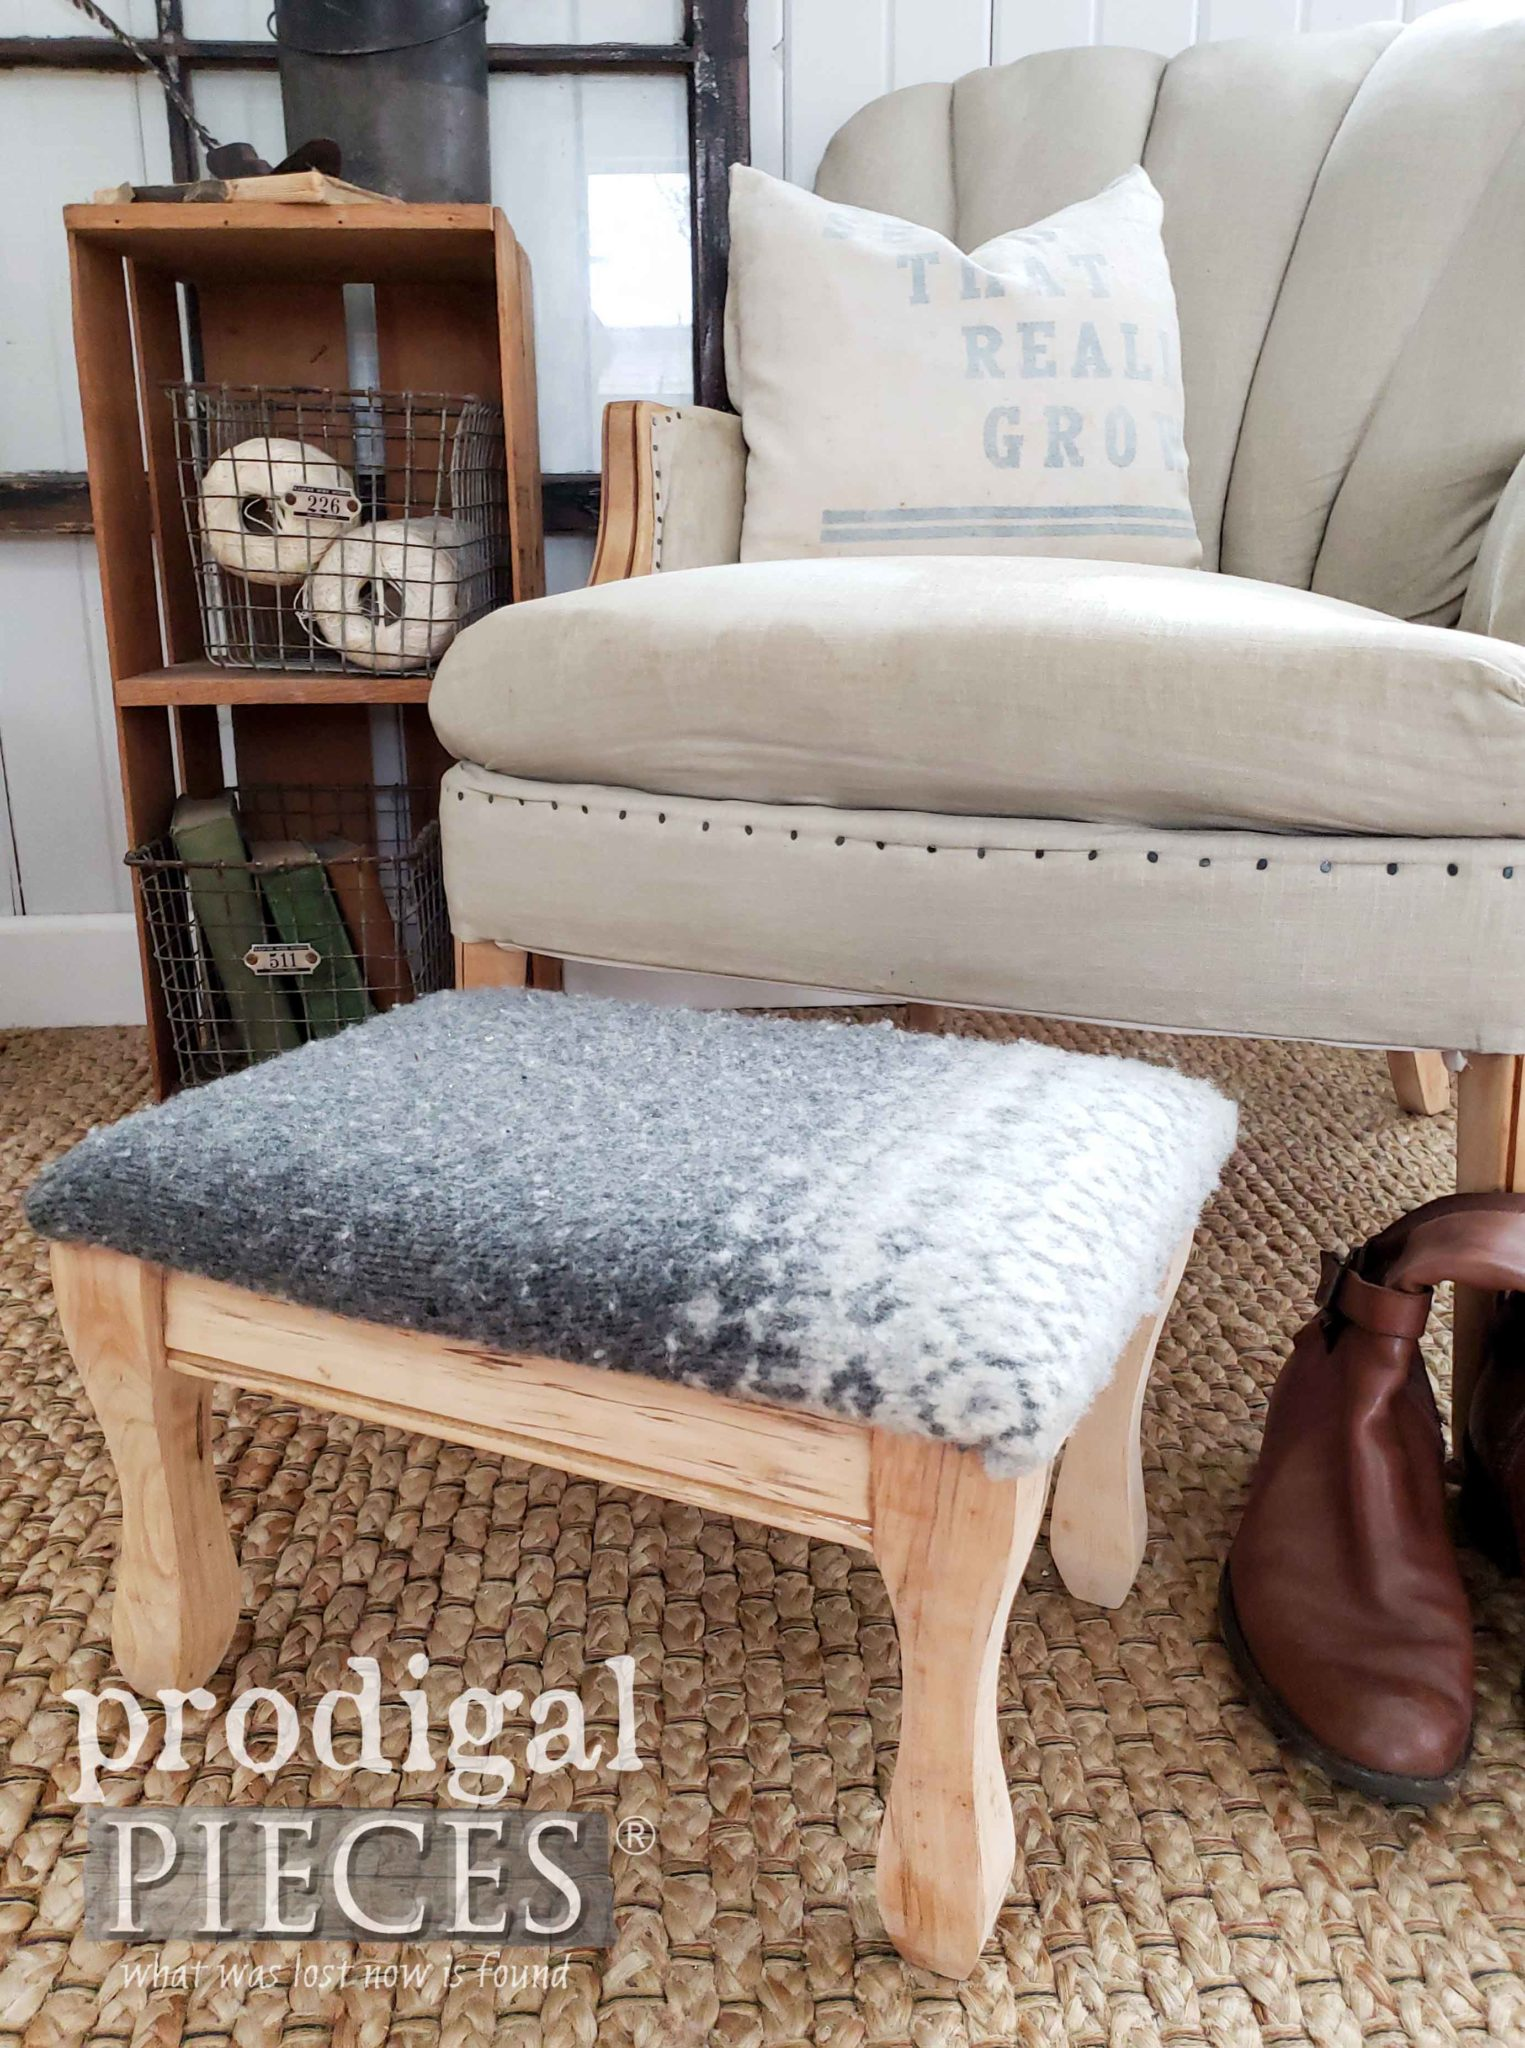 Nordic Style Farmhouse Footstool with Gray Felted Wool Sweater by Larissa of Prodigal Pieces | prodigalpieces.com #prodigalpieces #furniture #diy #shopping #farmhouse #vintage #home #homedecor #homedecorideas